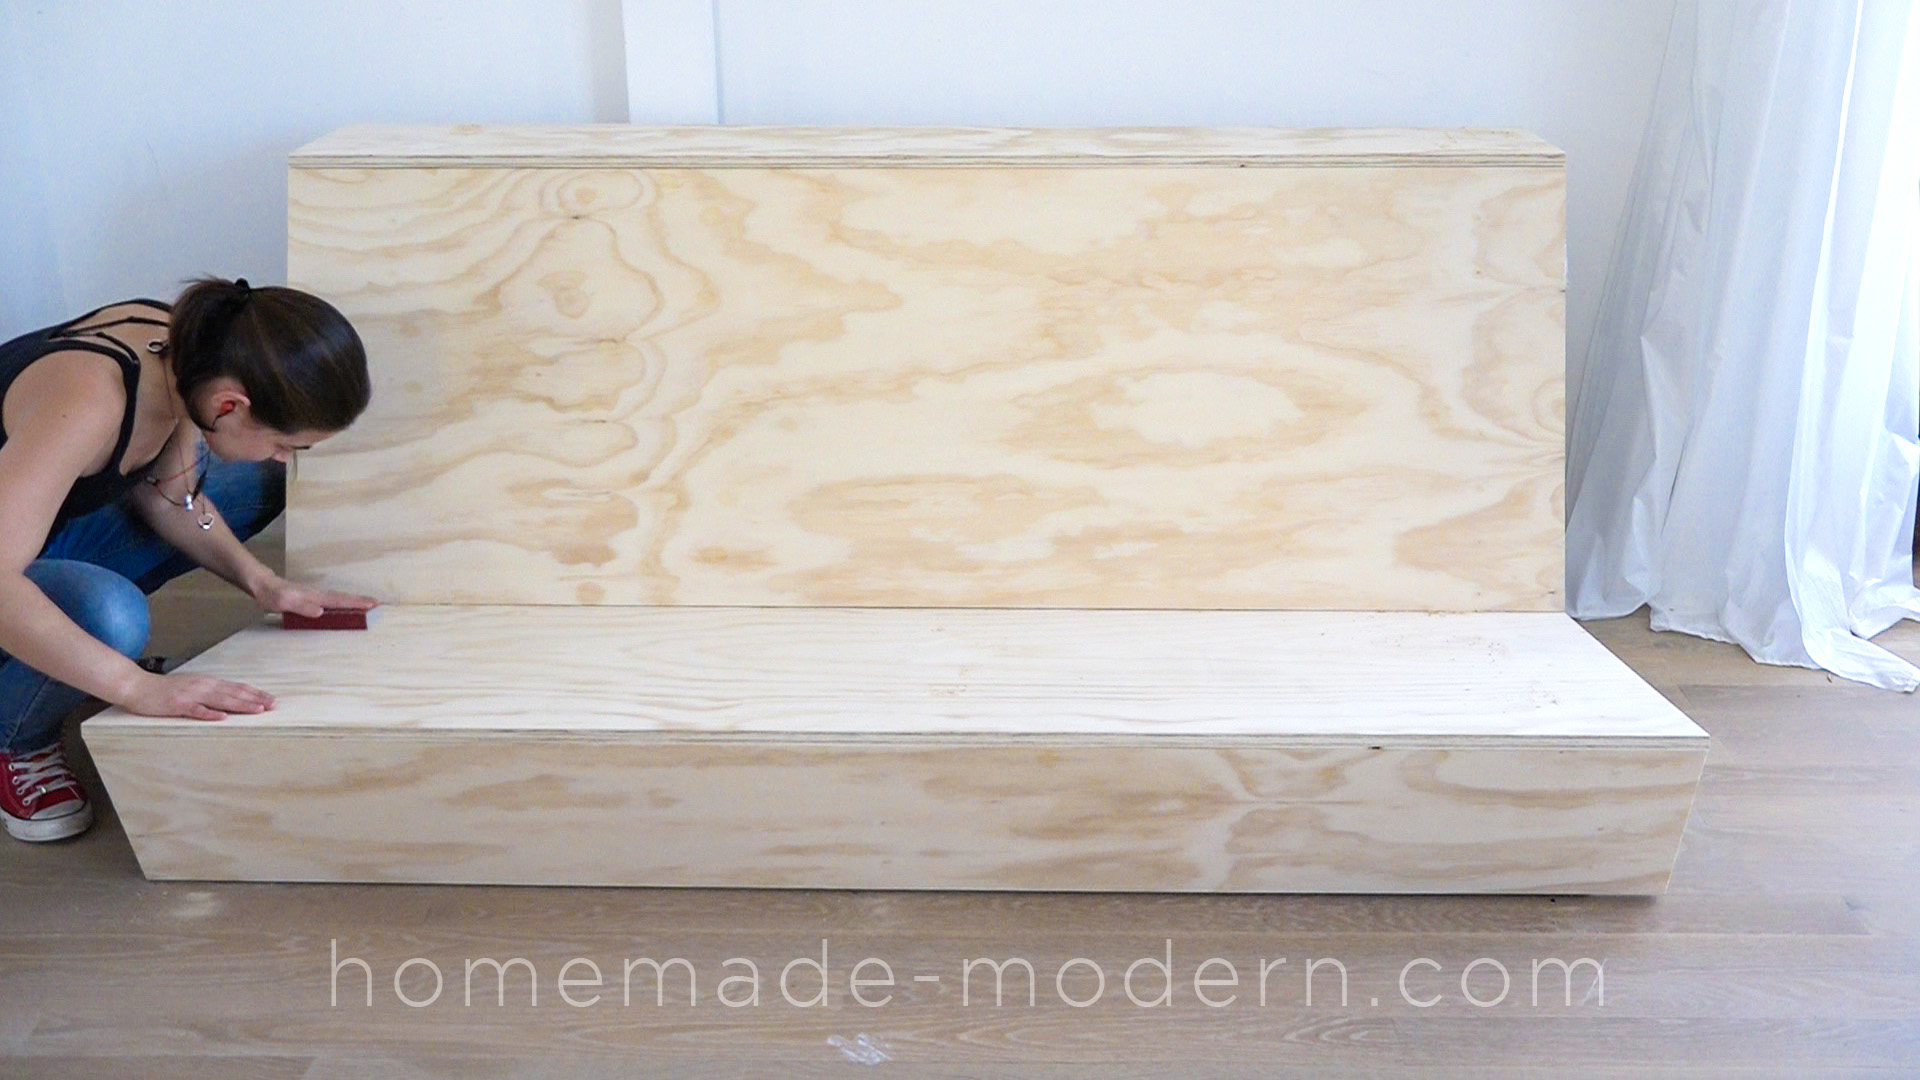 This DIY Zig Zag Sofa was designed specifically for lofts and has a built in. HomeMade Modern EP108 Zig Zag Sofa